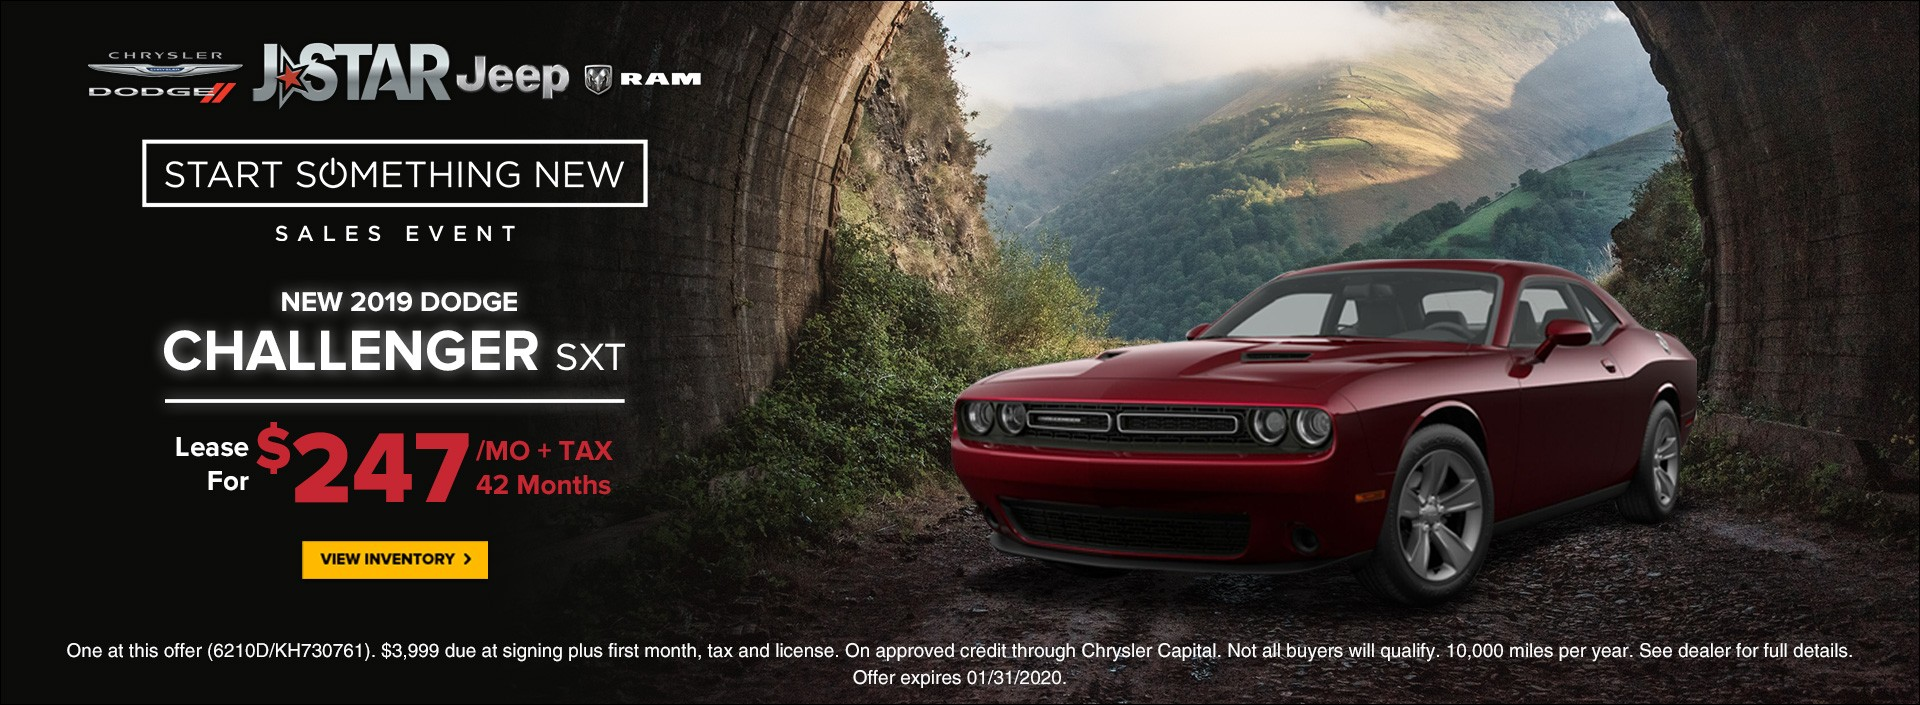 new 2019 Dodge Challenger SXT lease for $247 per month plus tax for 42 months